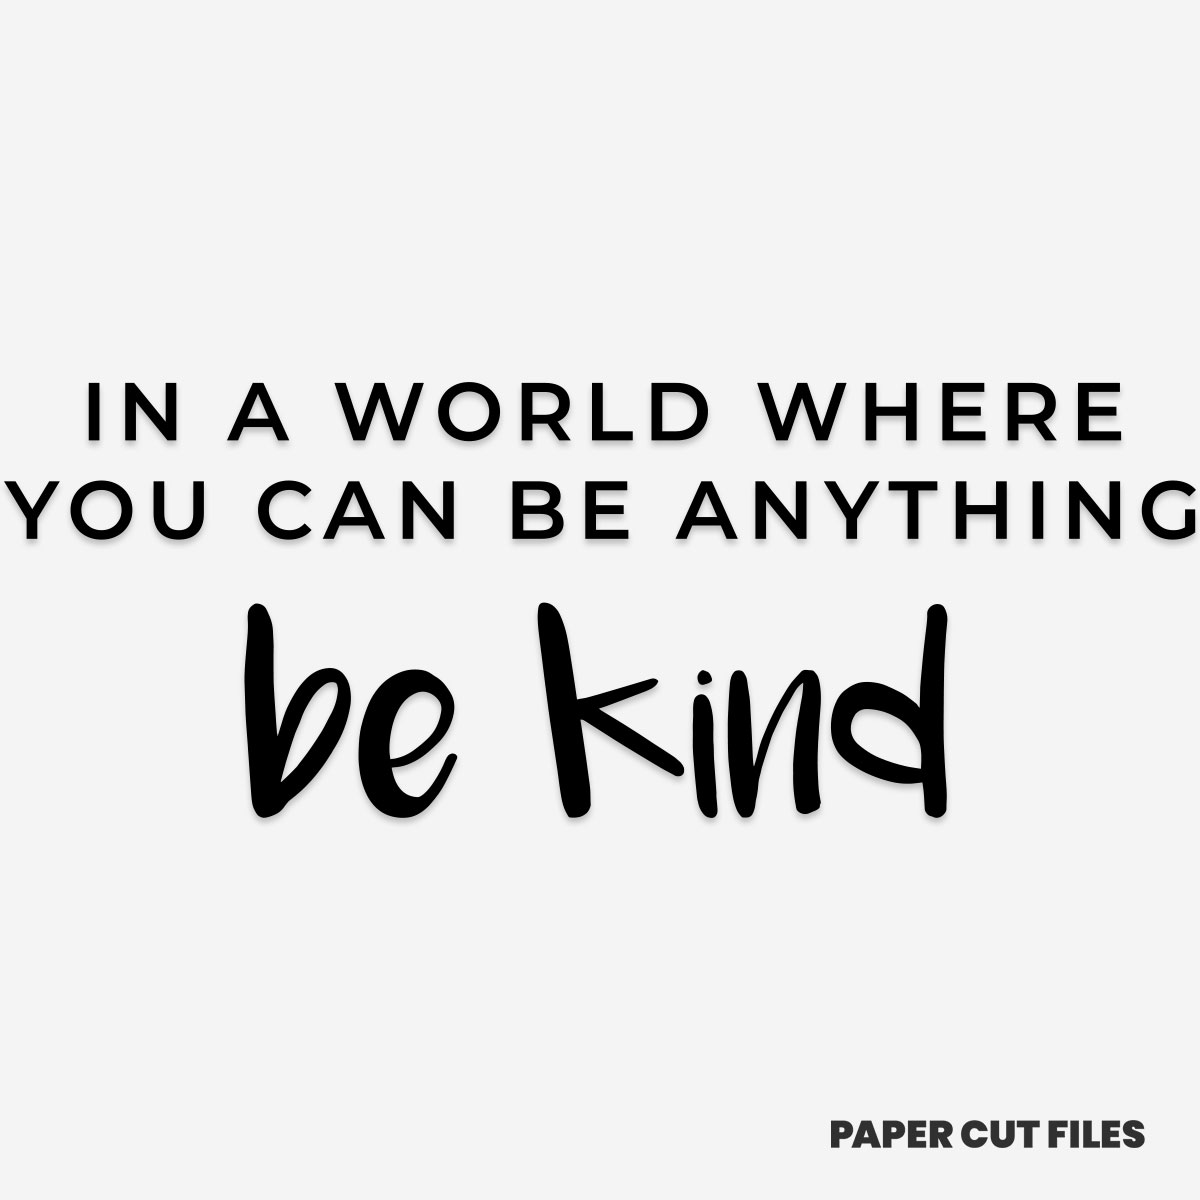 Be kind' quote - SVG & PNG PaperCut Files